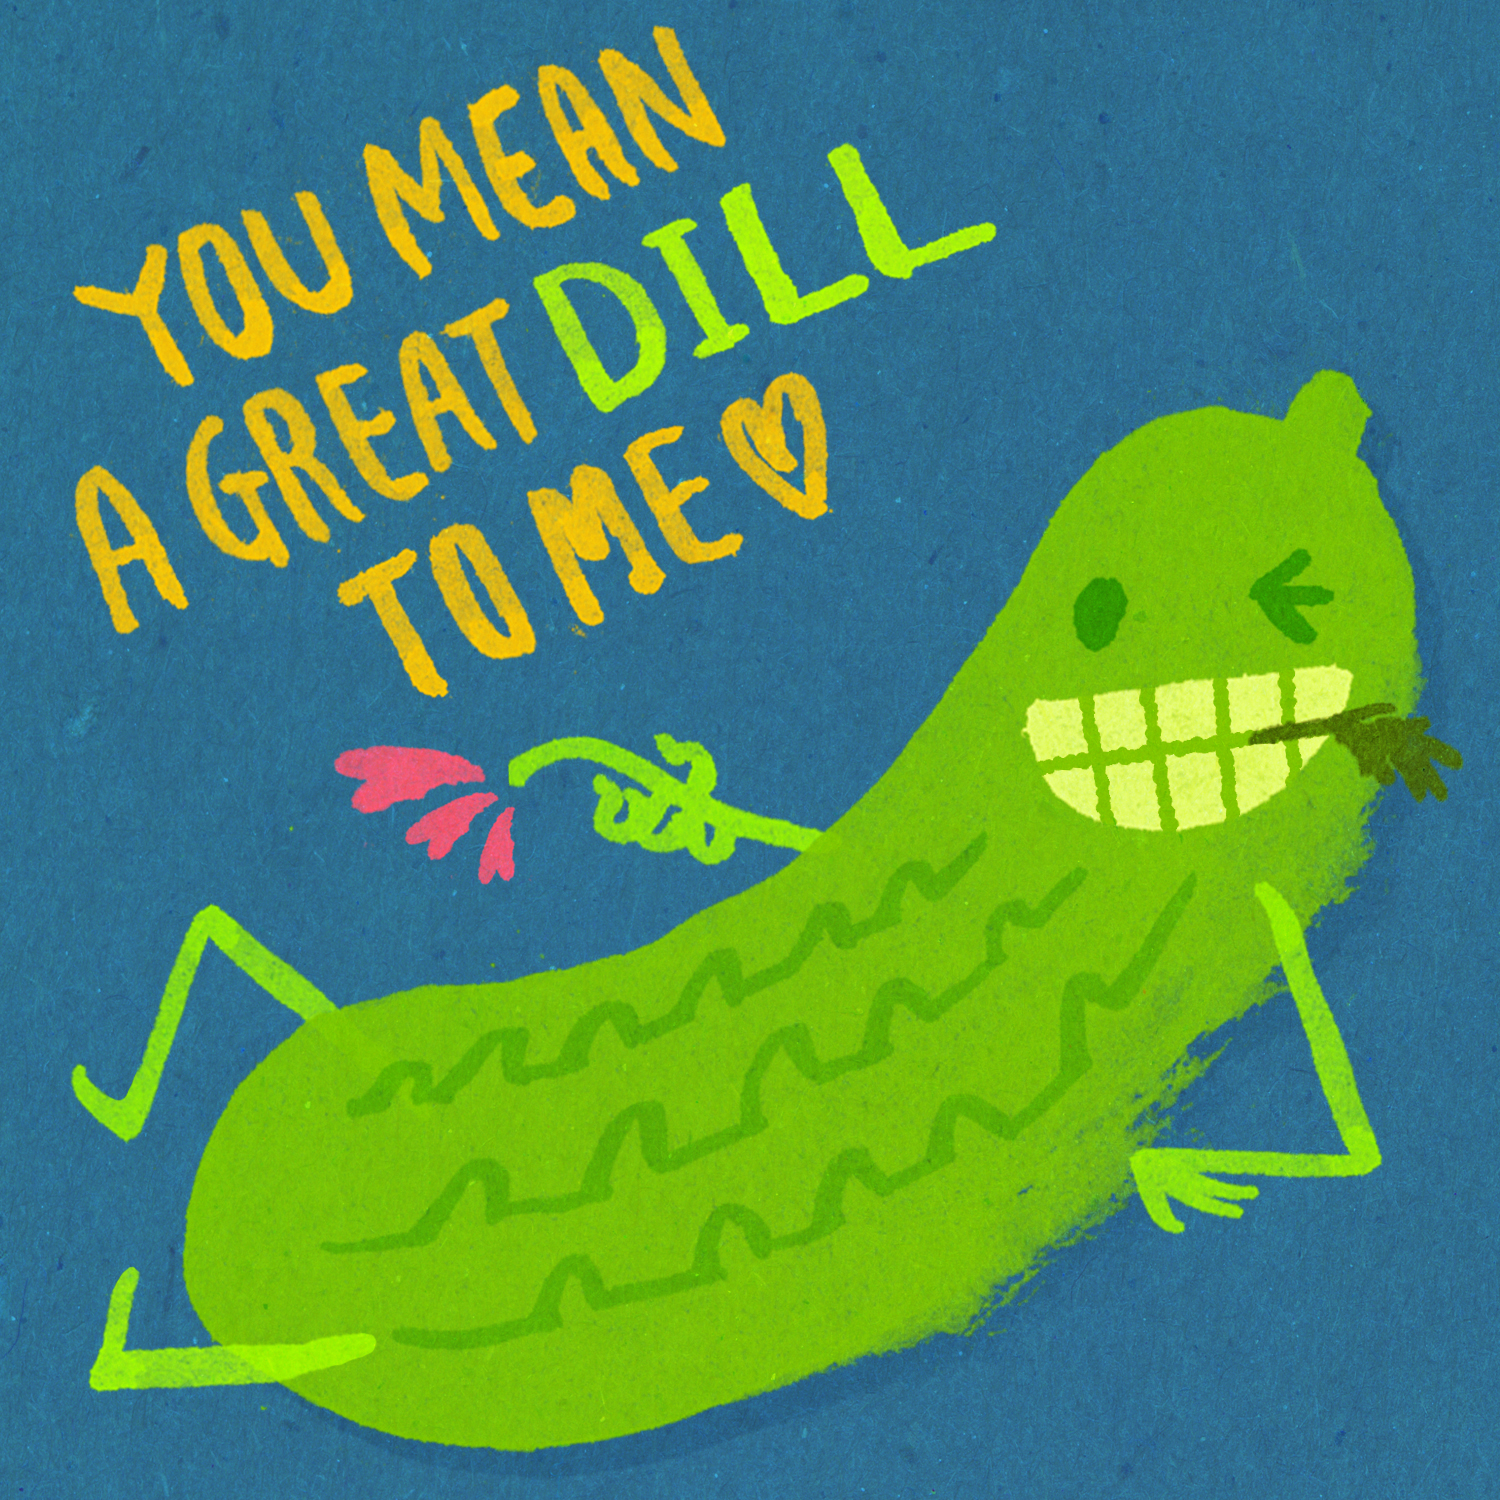 You mean a great dill to me